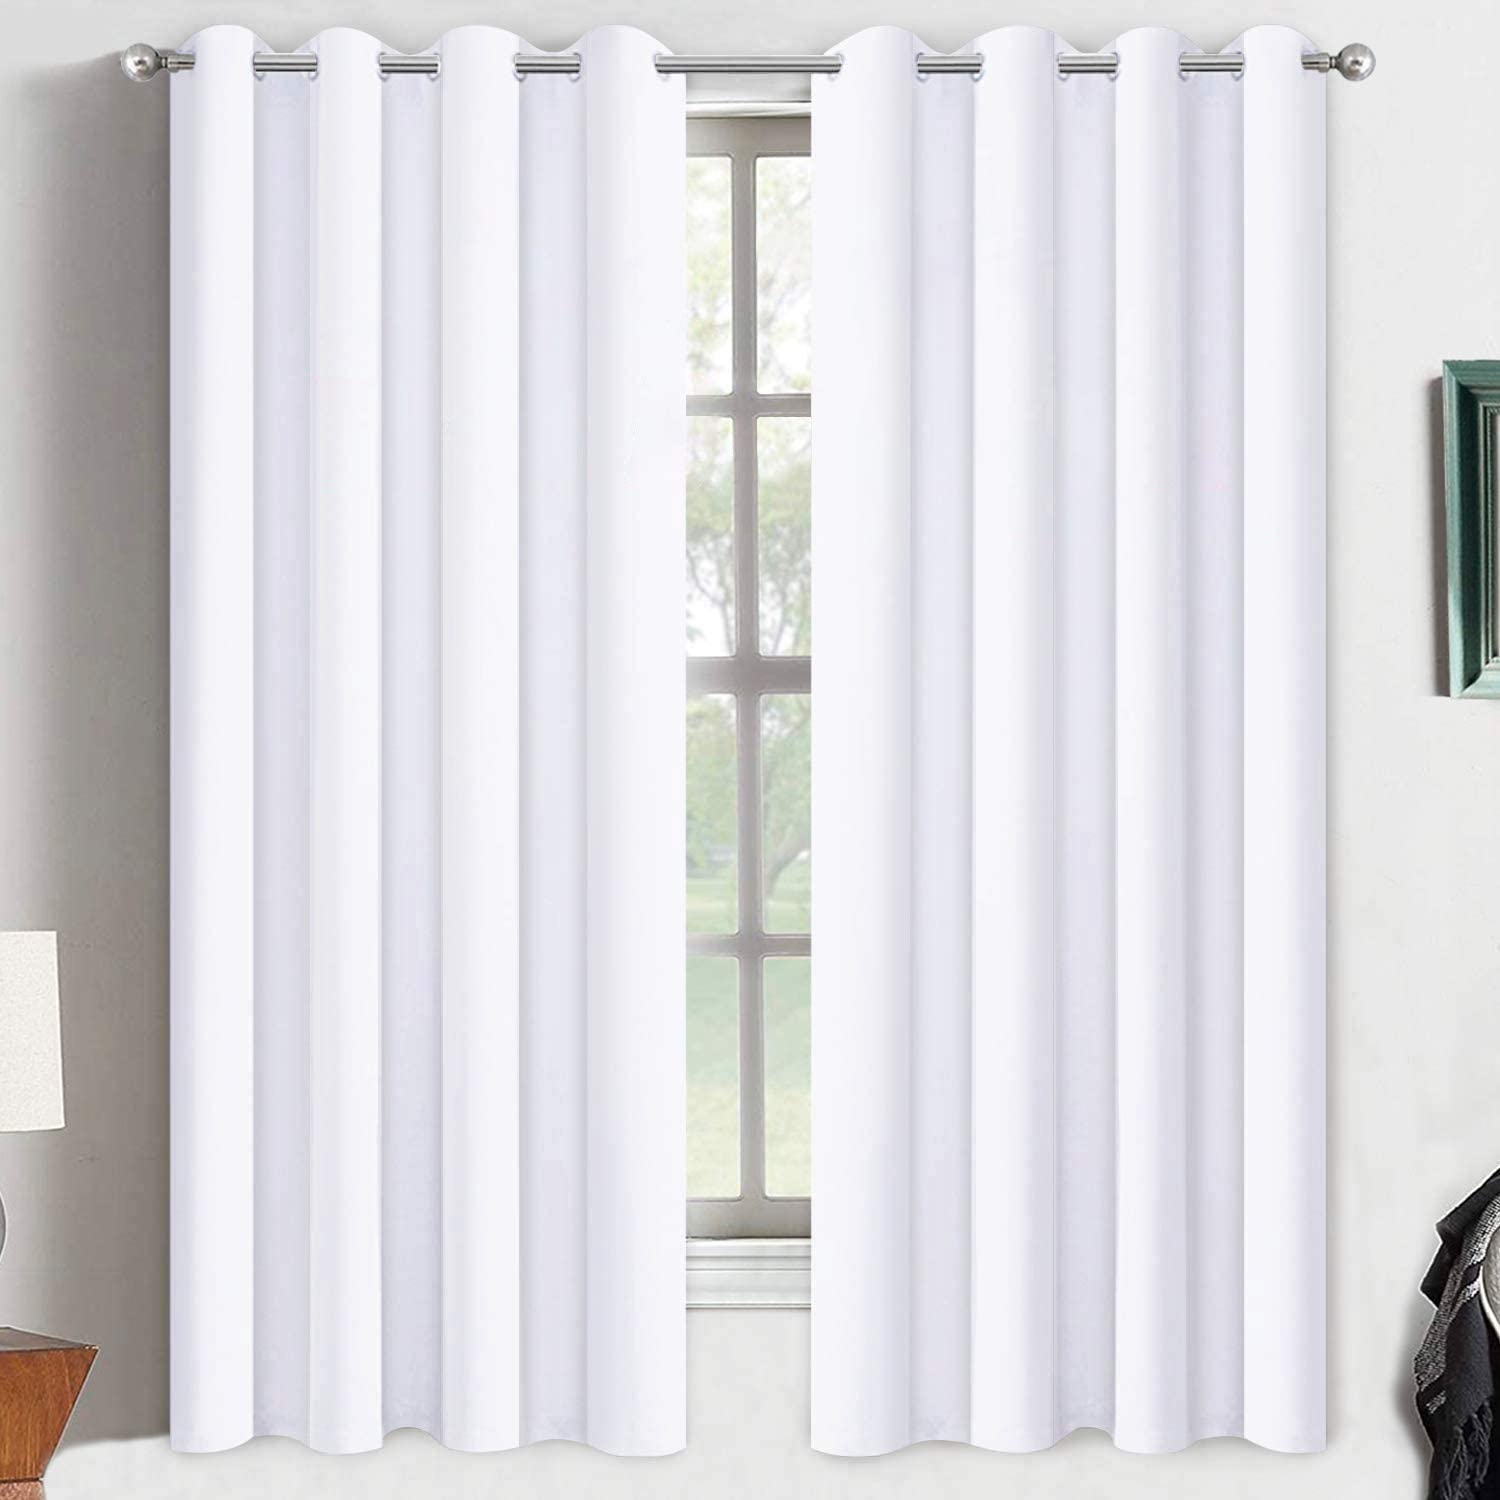 Yakamok Thermal Insulated Curtains,Room Darkening Grommet for Bedroom/Living Room,2 Tie Backs Included (2 Panels, 52 Inch Wide by 63 Inch Long, Pure White)